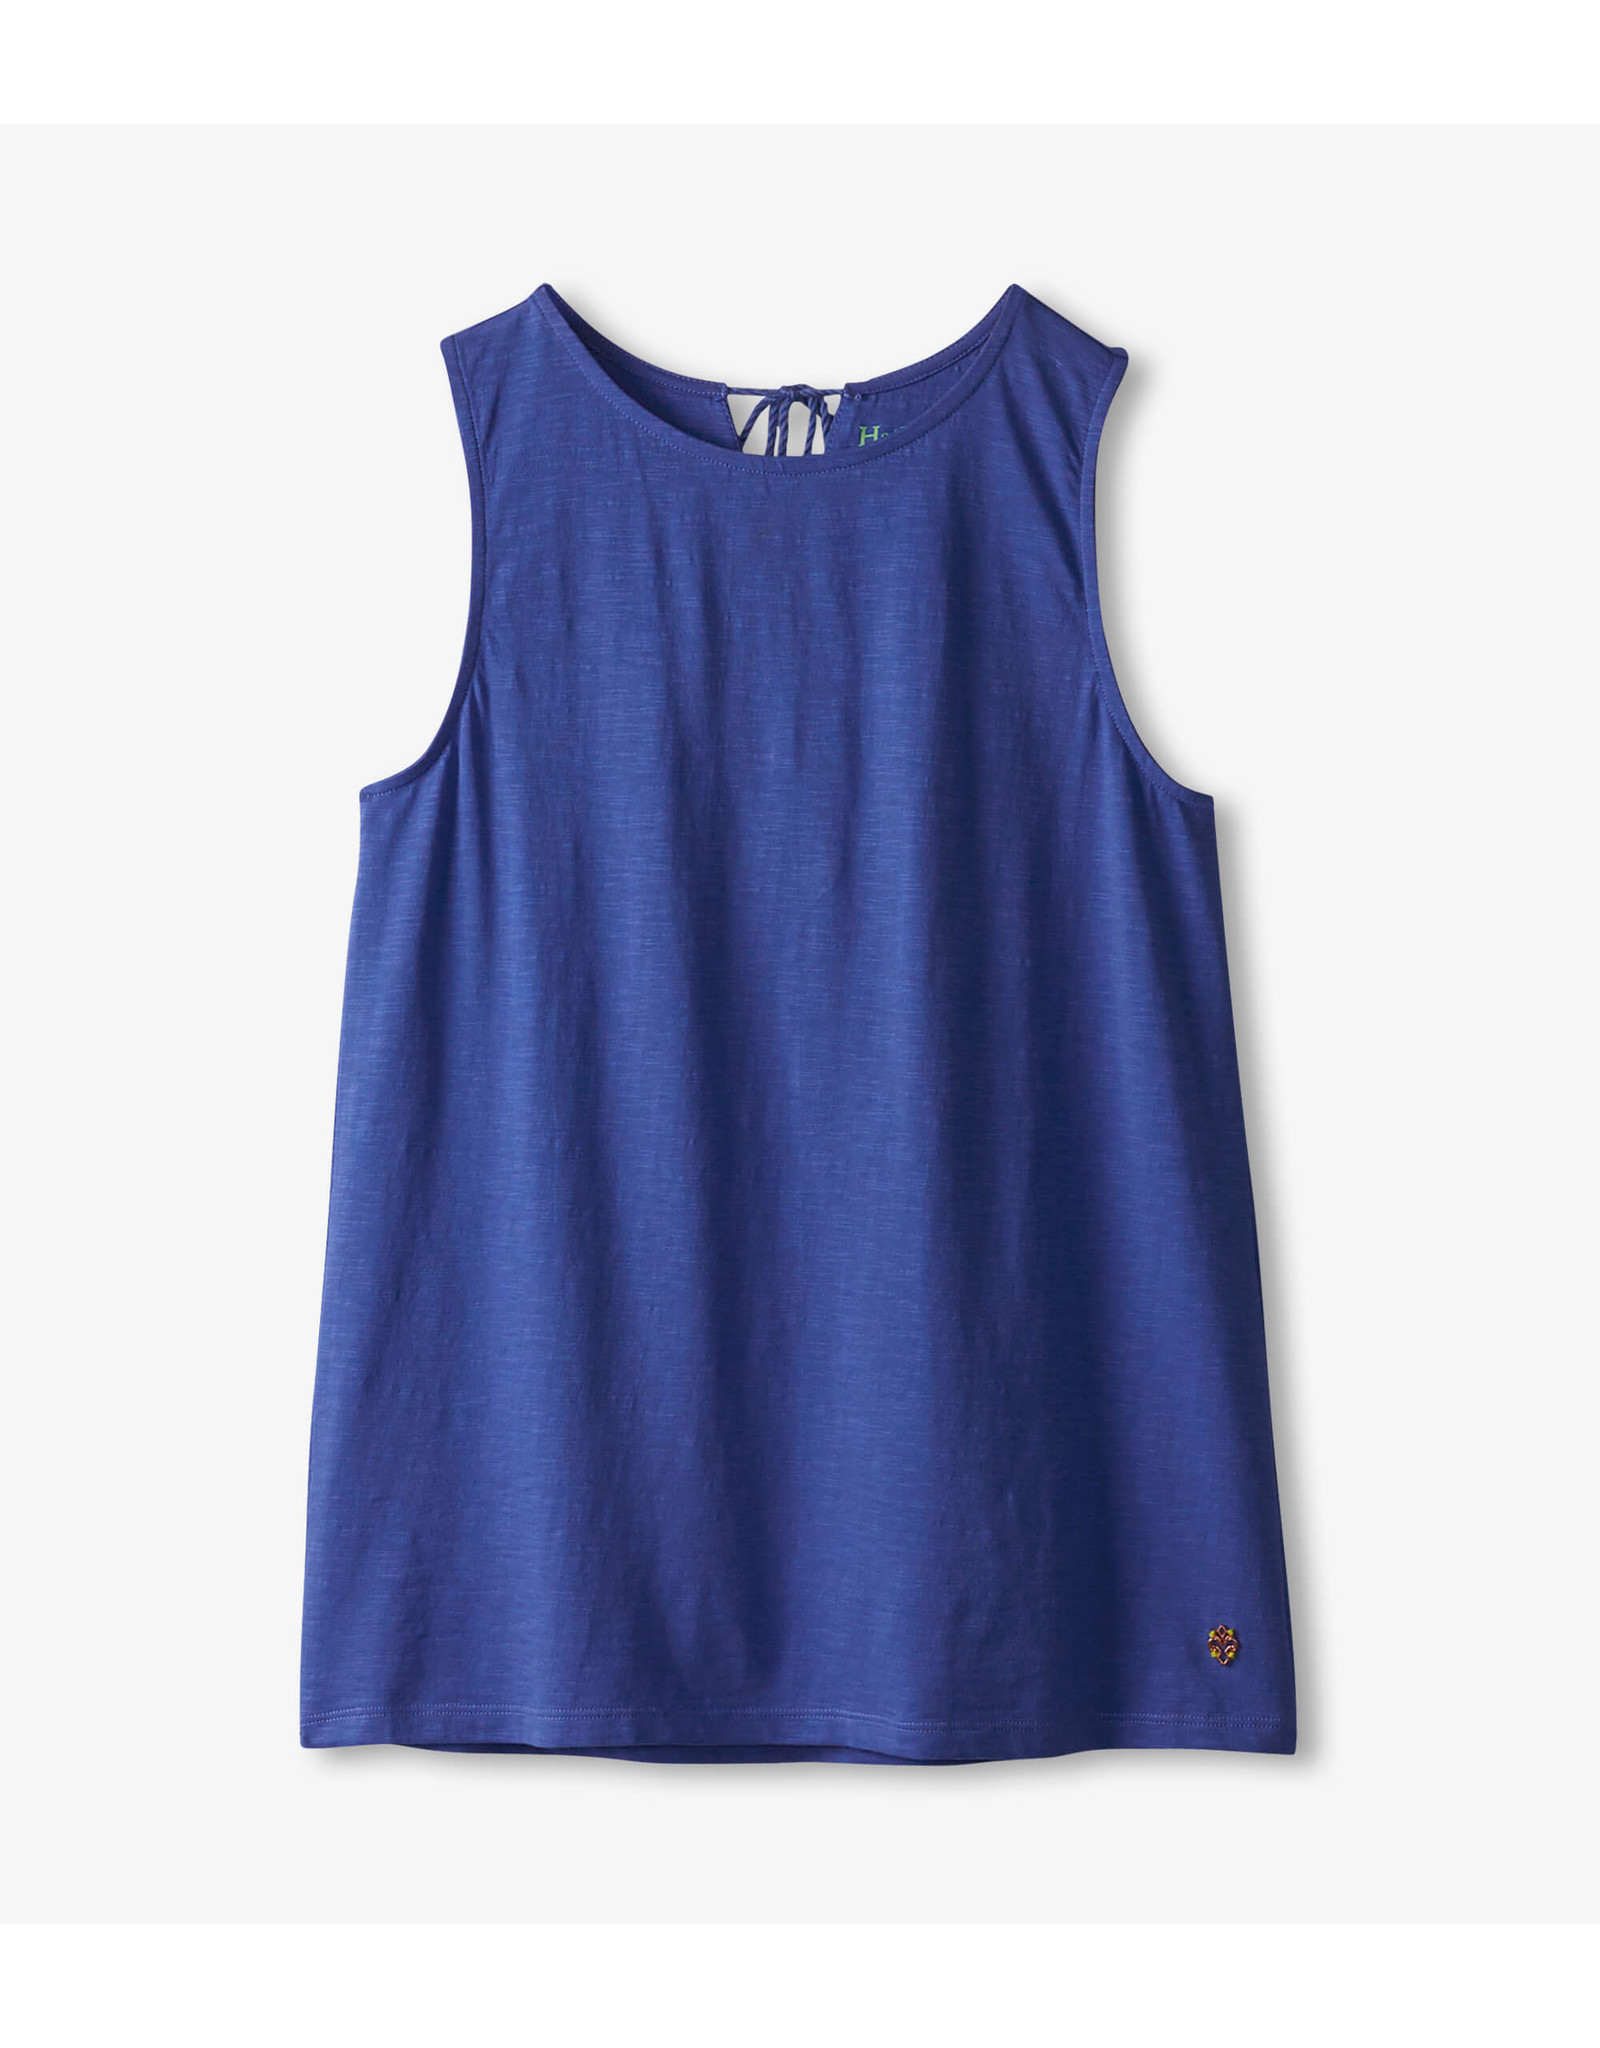 HATLEY S21PBL1491 Camisole Riley